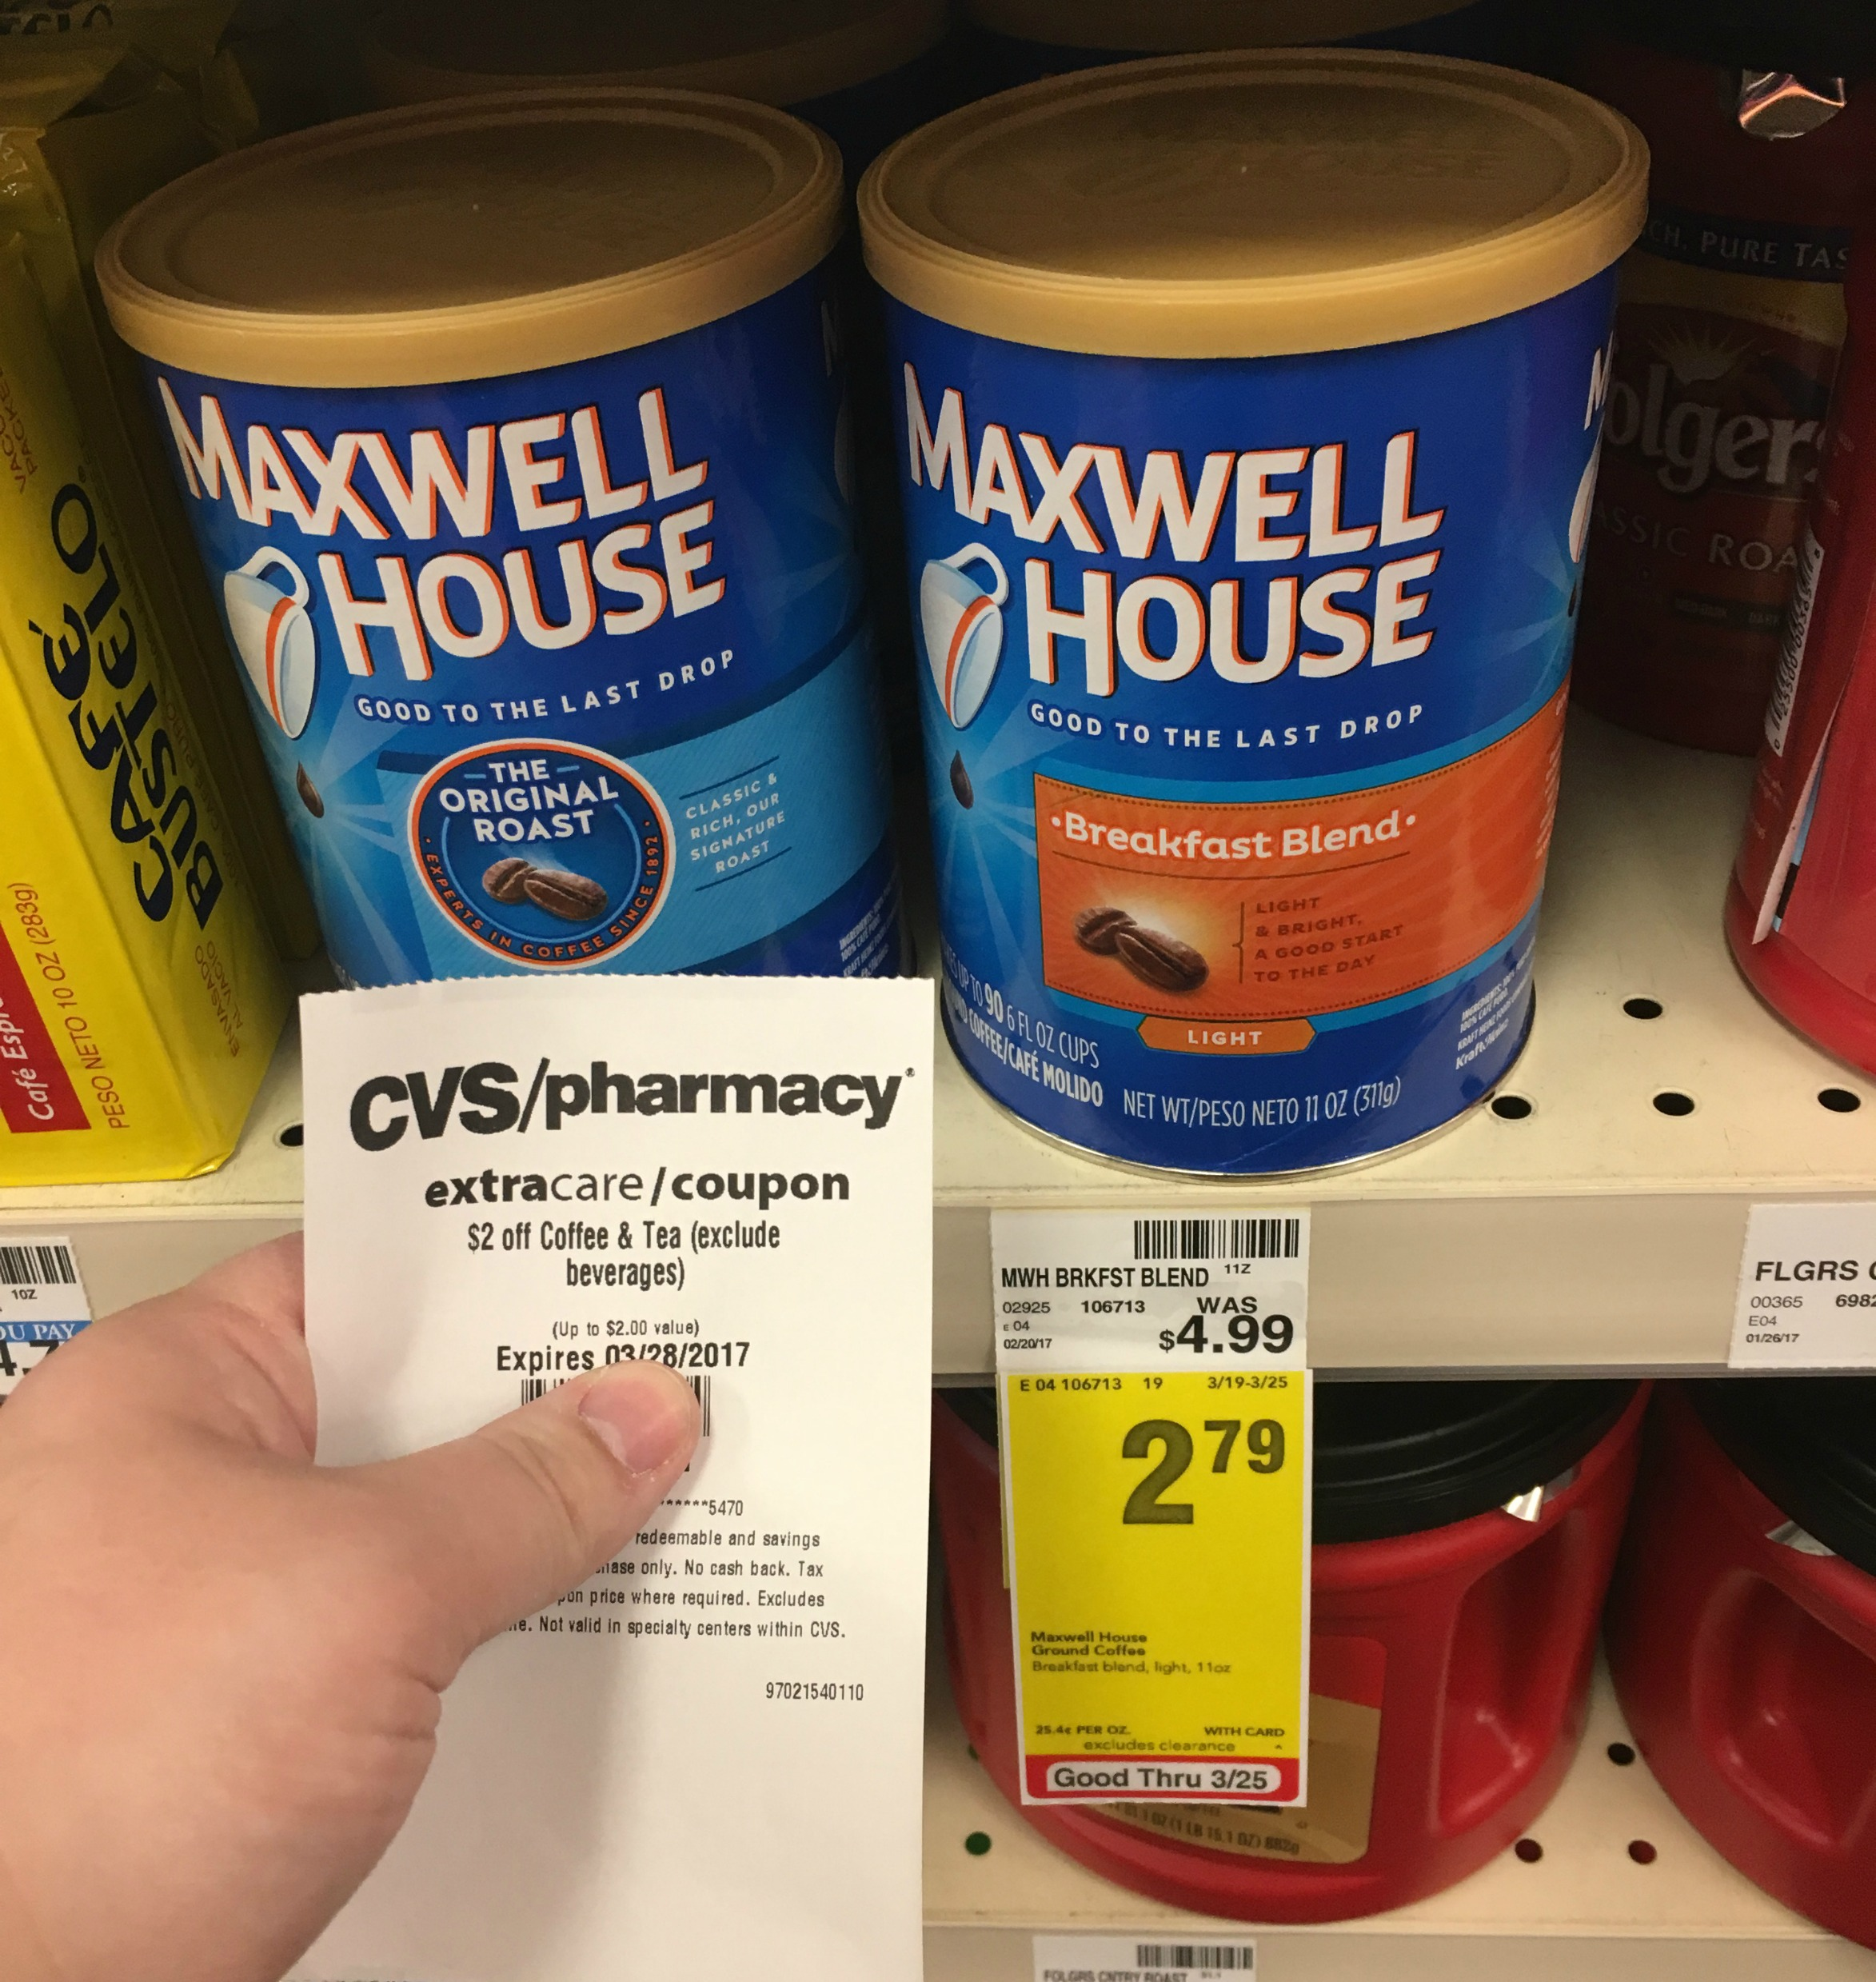 Mar 26, · Maxwell House Coffee G is $ at Nofrills (Victoria Park/Lawrence). I don't know when this deal will expire as Rotate [No Frills] Maxwell House Coffee G $ Haven't found this deal on flyer. Maxwell House Coffee G is $ at Nofrills (Victoria Park/Lawrence). I don't know when this deal will expire as I didn't pay attention.